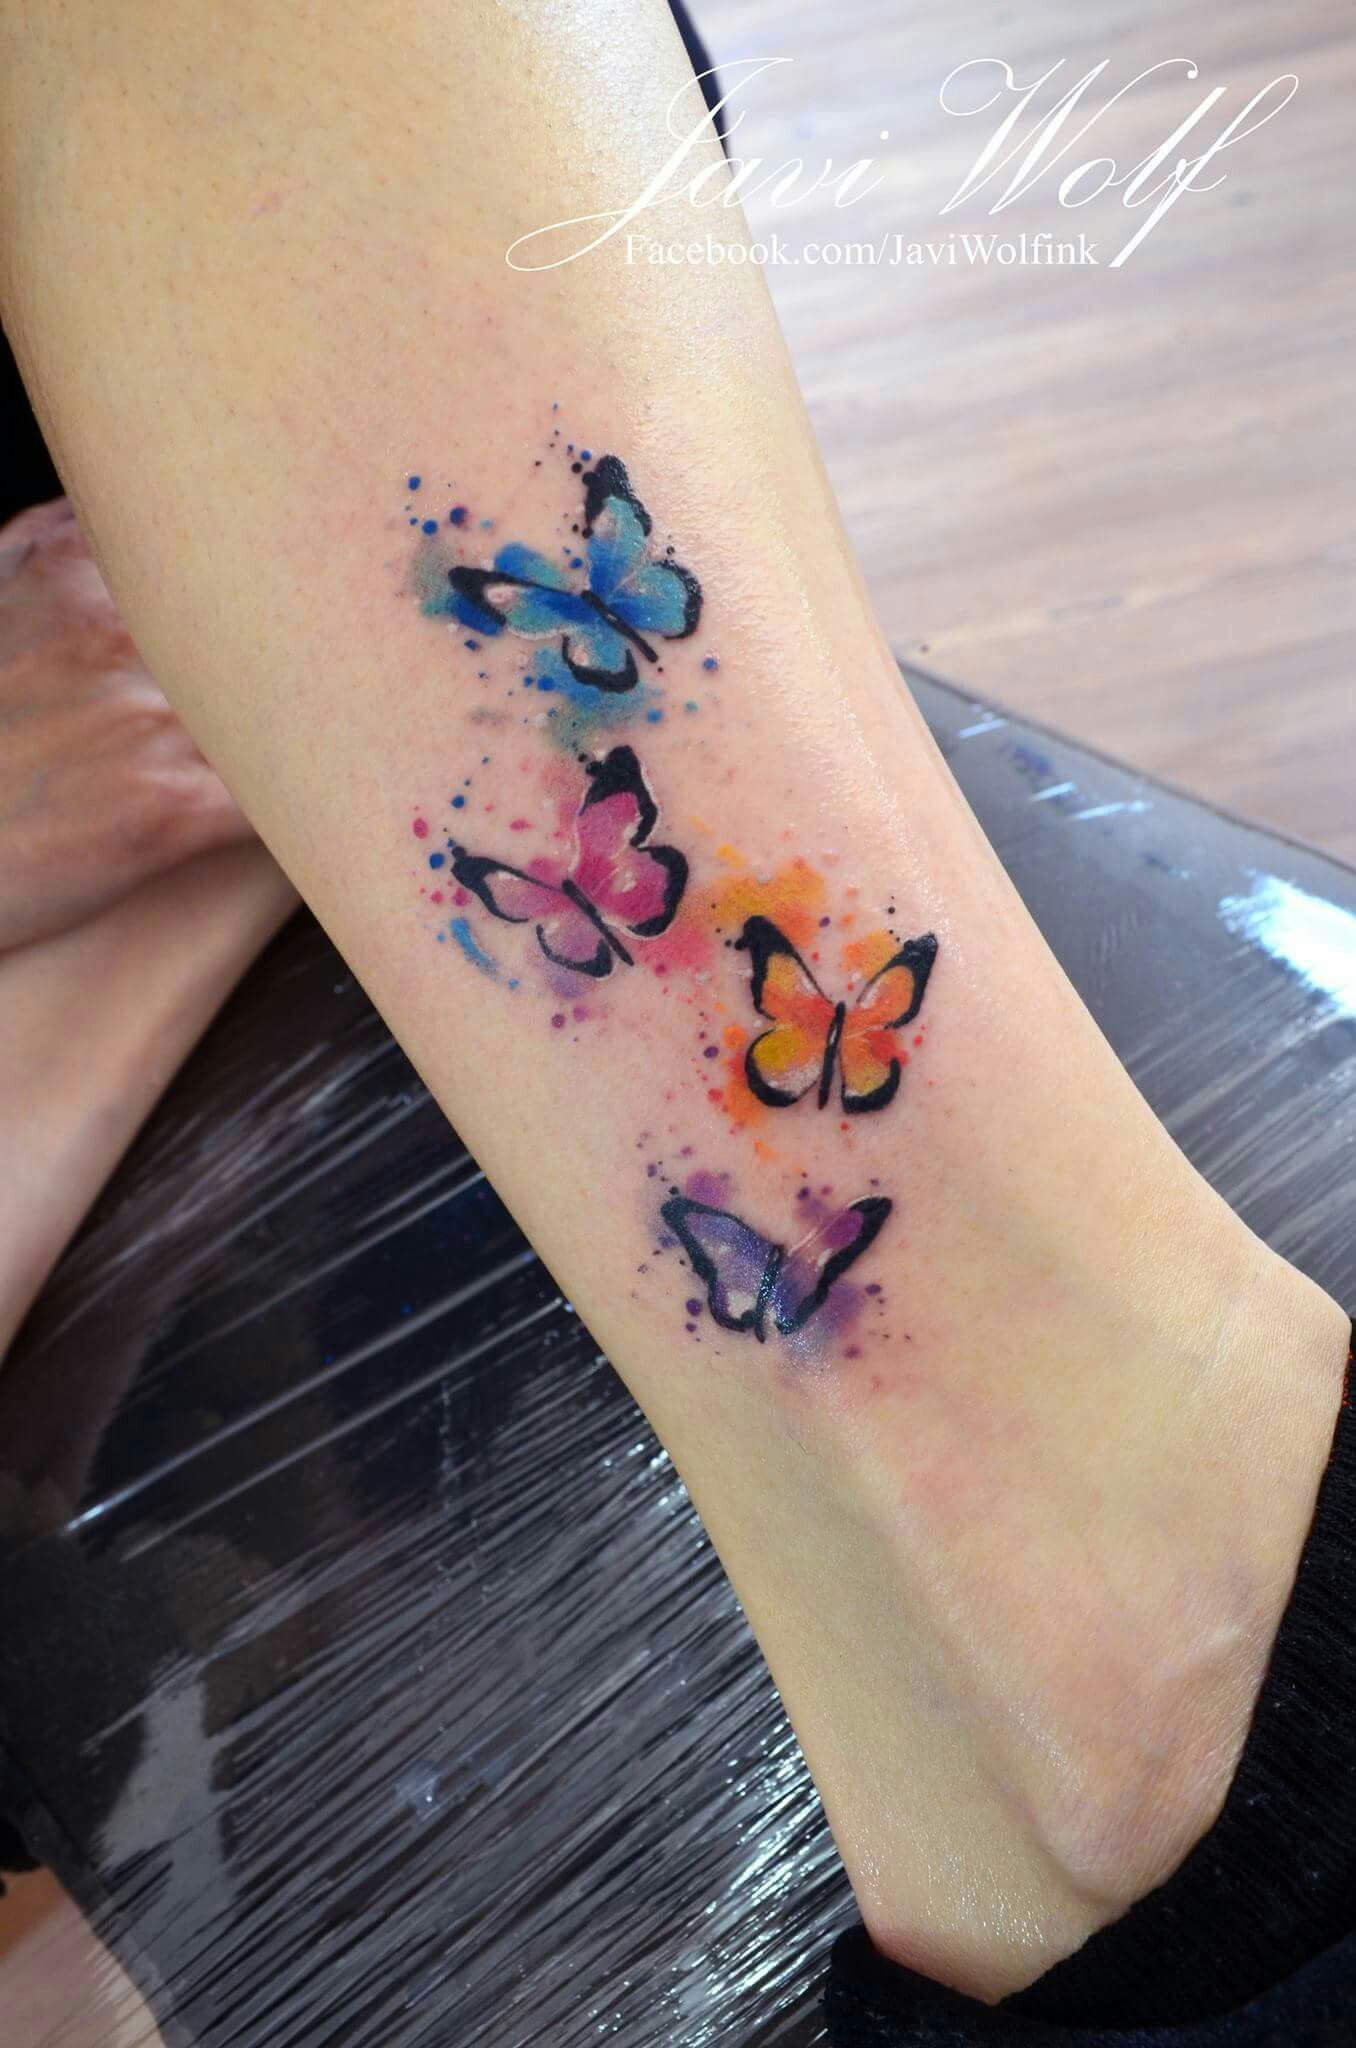 Javi Wolf Watercolor Butterflies Watercolor Butterfly Tattoo Butterfly Tattoo Designs Tattoos